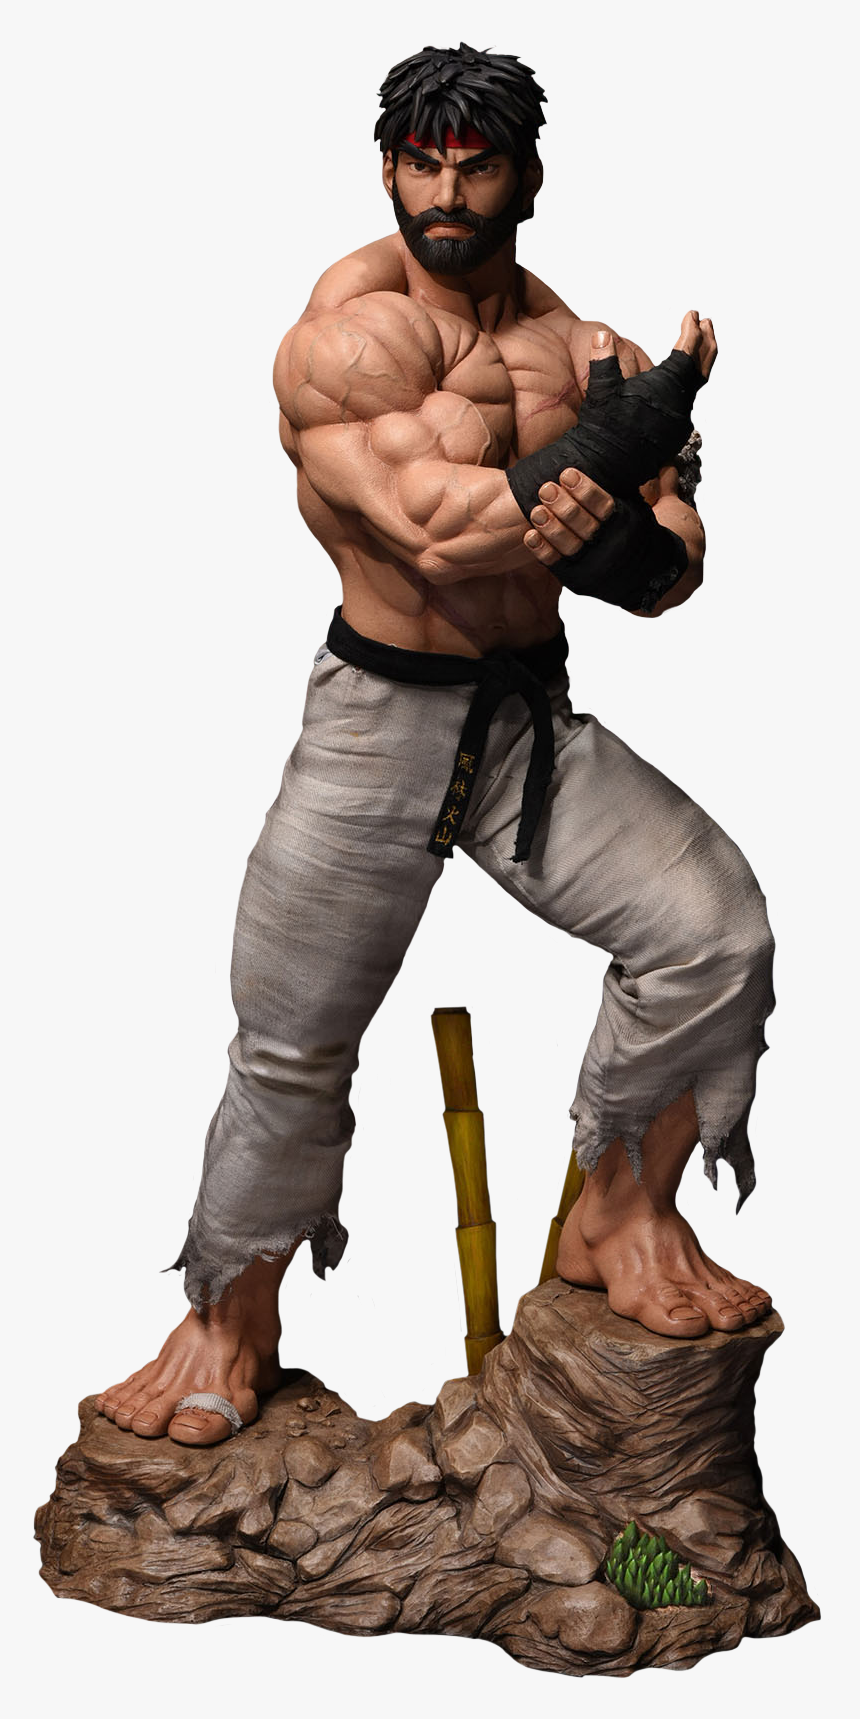 Ryu Street Fighter Statue Hd Png Download Kindpng